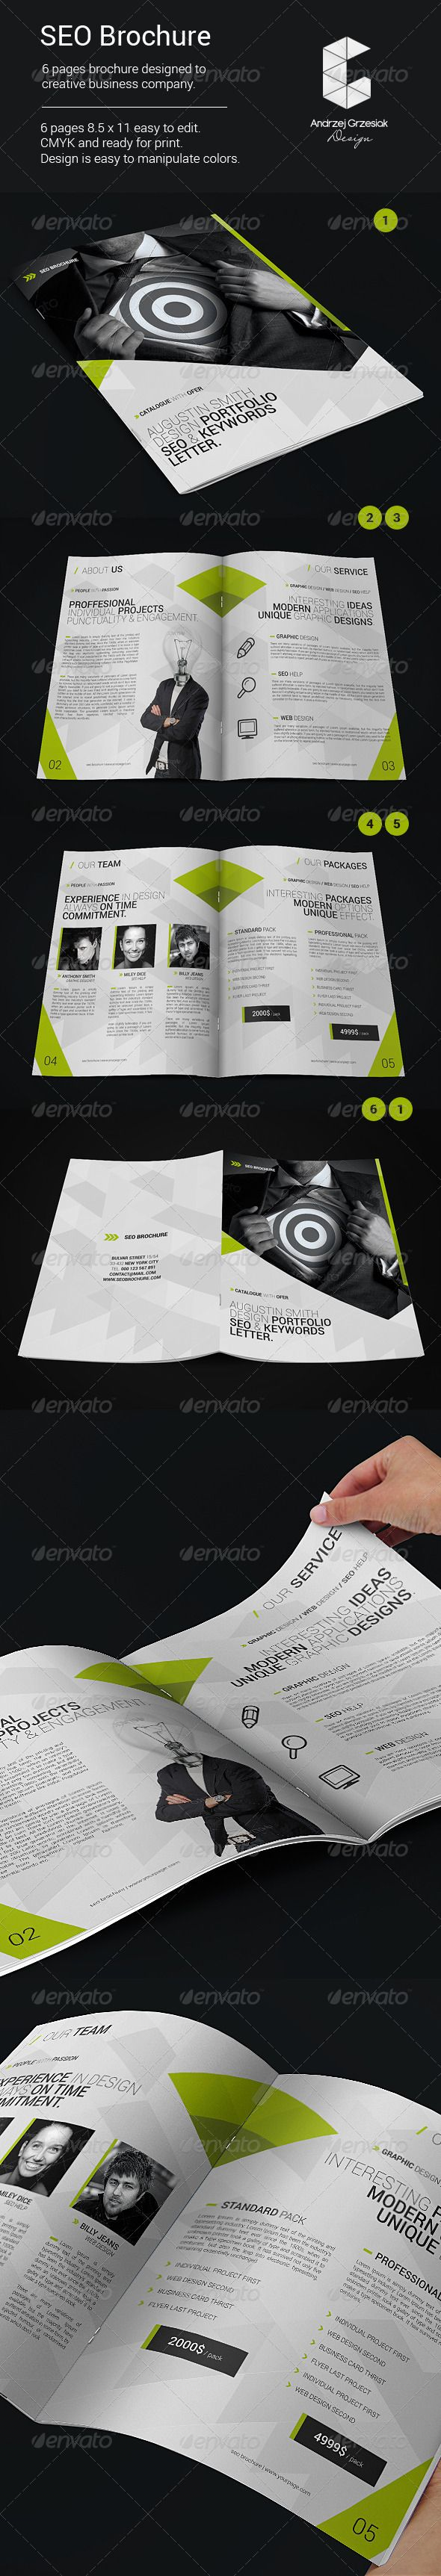 seo brochure graphicriver 6 pages brochure designed to creative